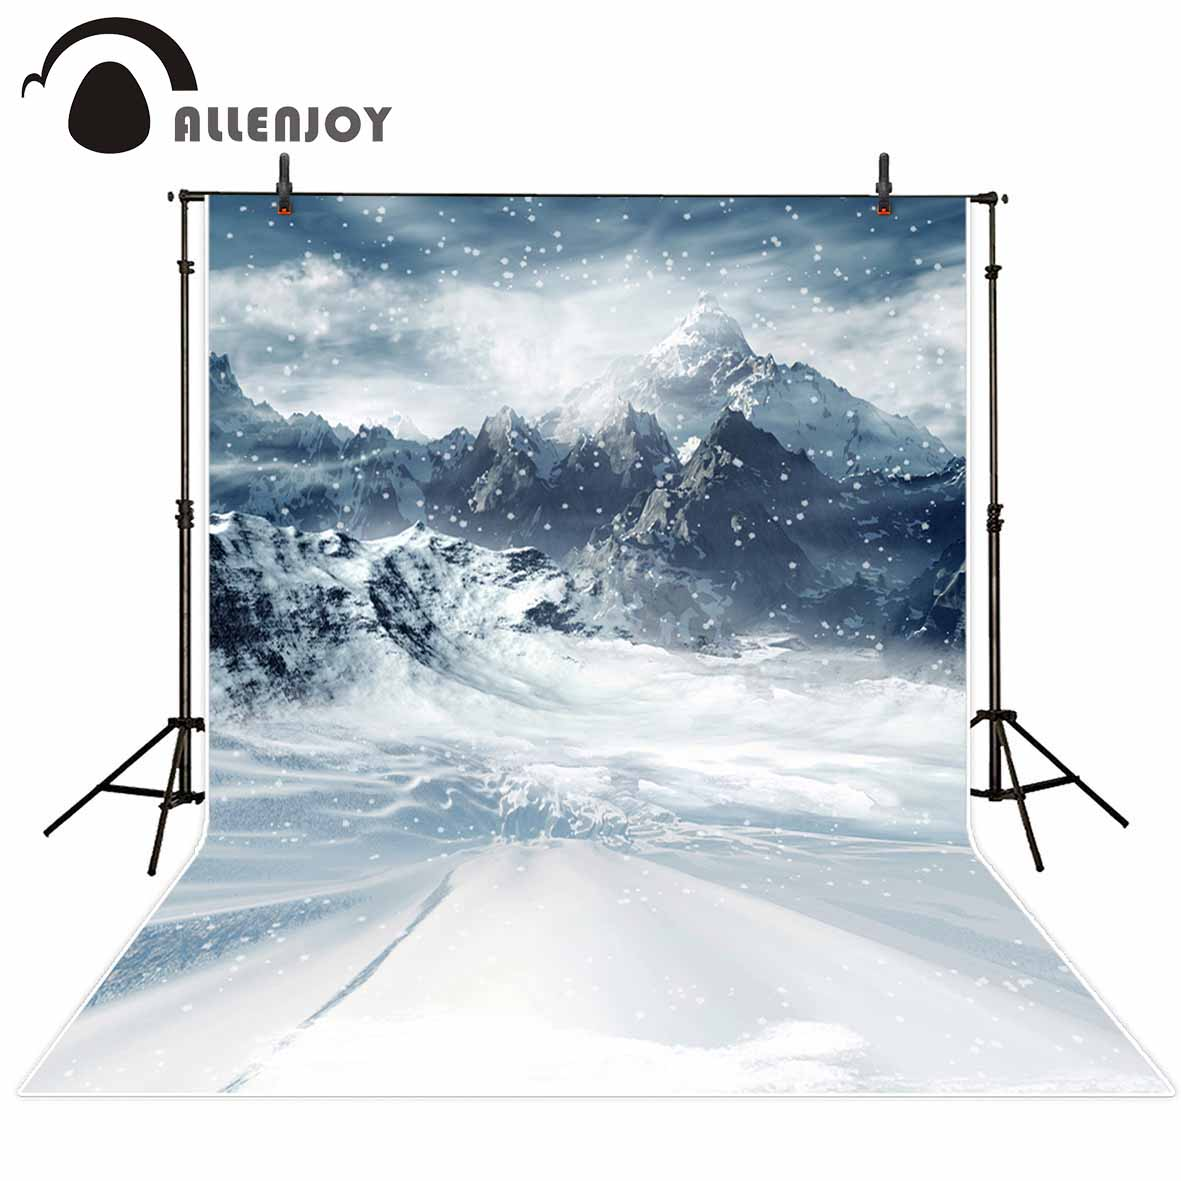 Allenjoy photography backdrops Winter background snowy mountains vinyl backdrops for photography kids photography background